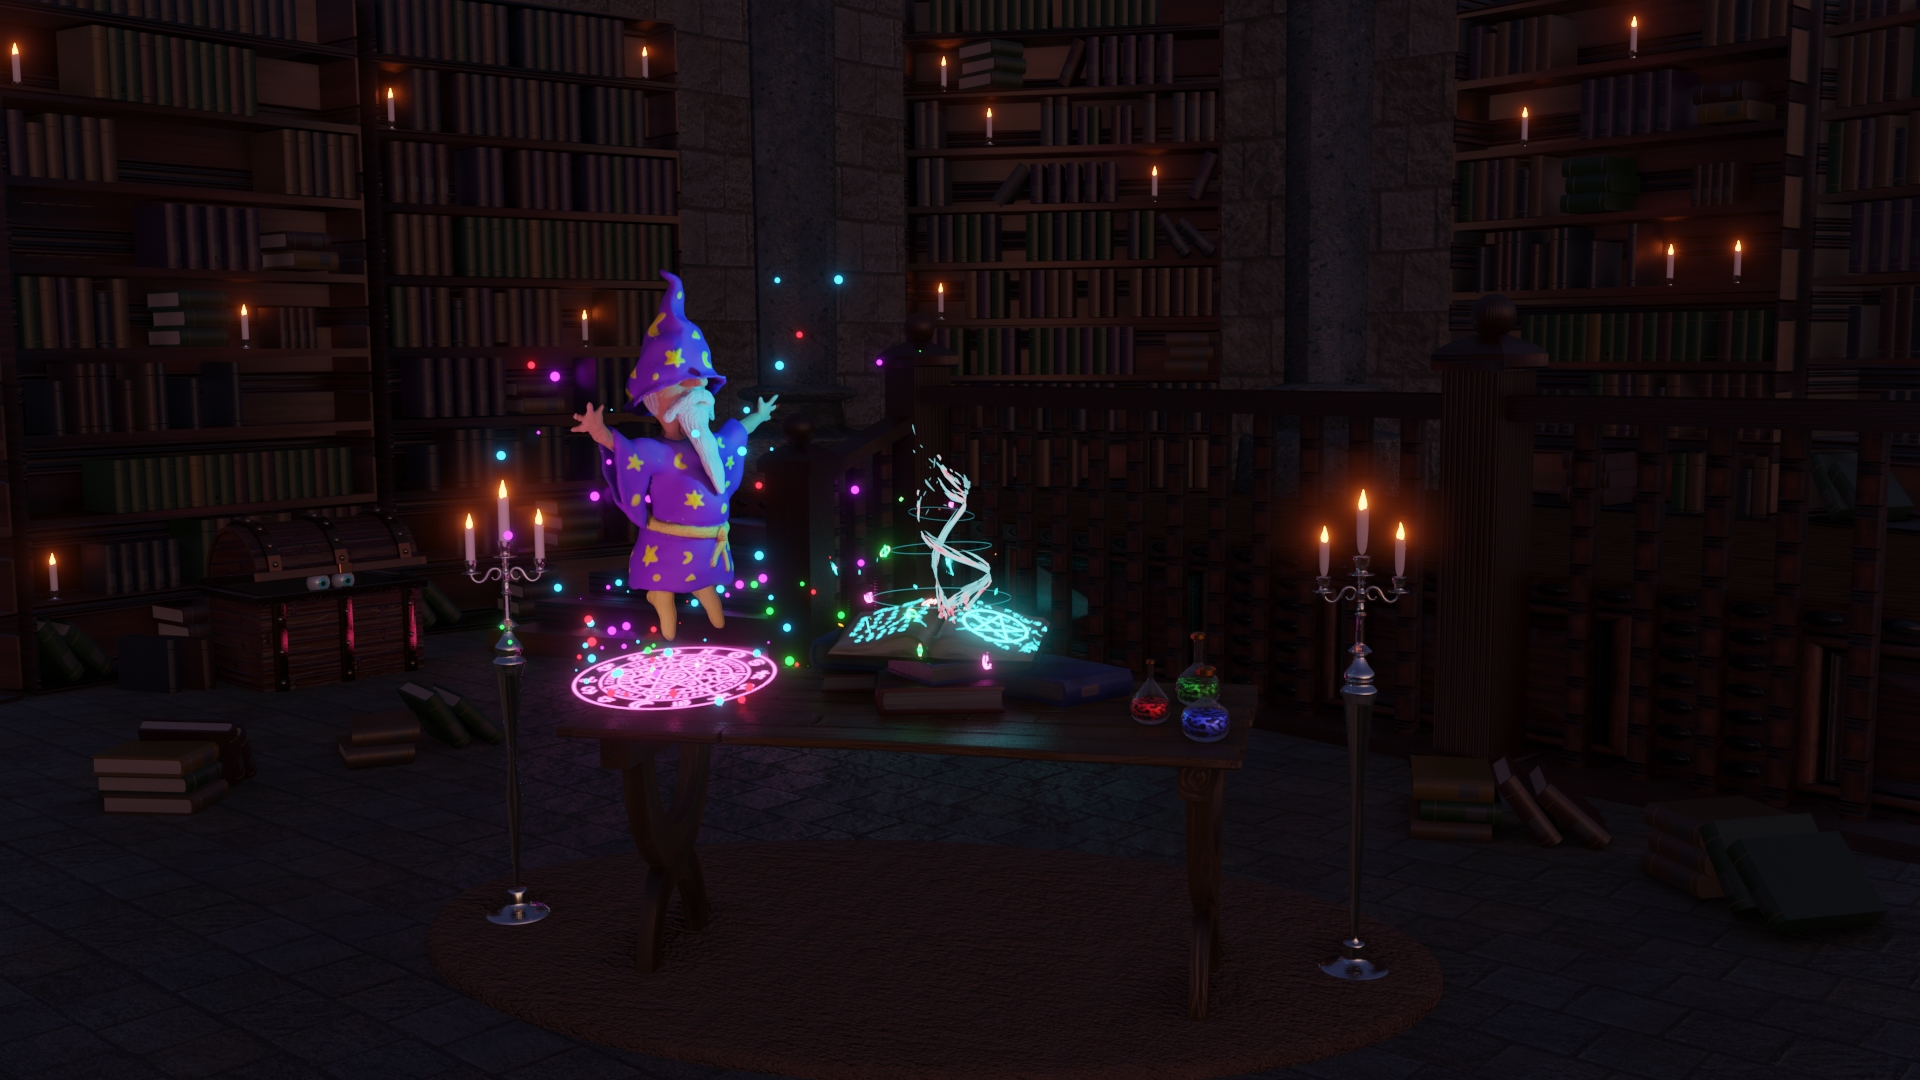 My competition entry - Library scene with a magical element